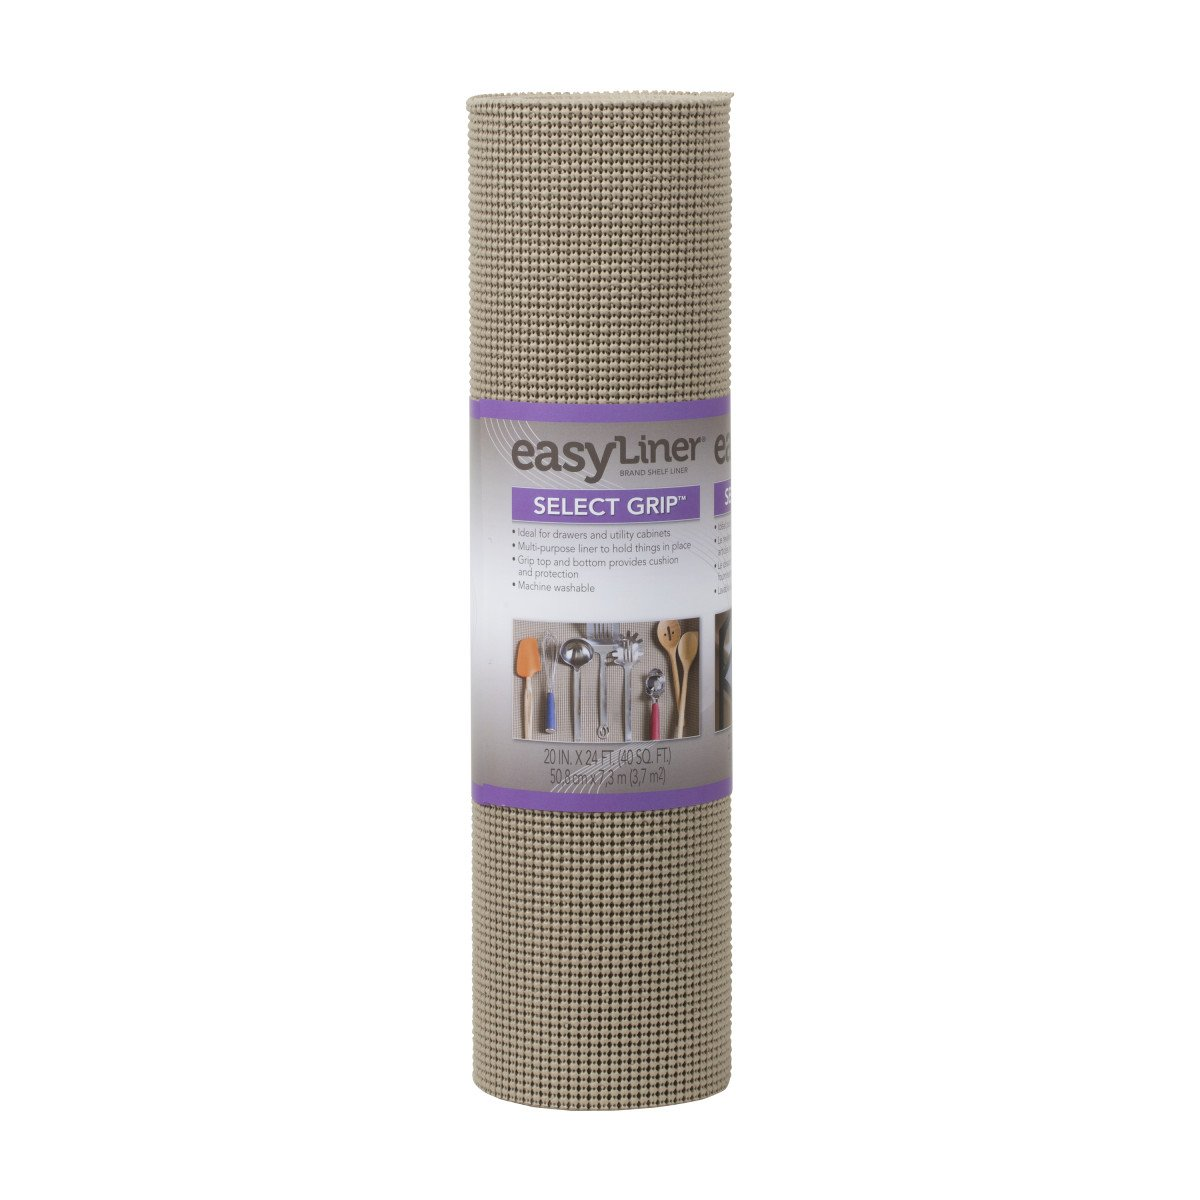 Duck Brand Select Grip Easy Liner Non-Adhesive Shelf Liner, 20 in. x 24 ft, Brownstone (281874)